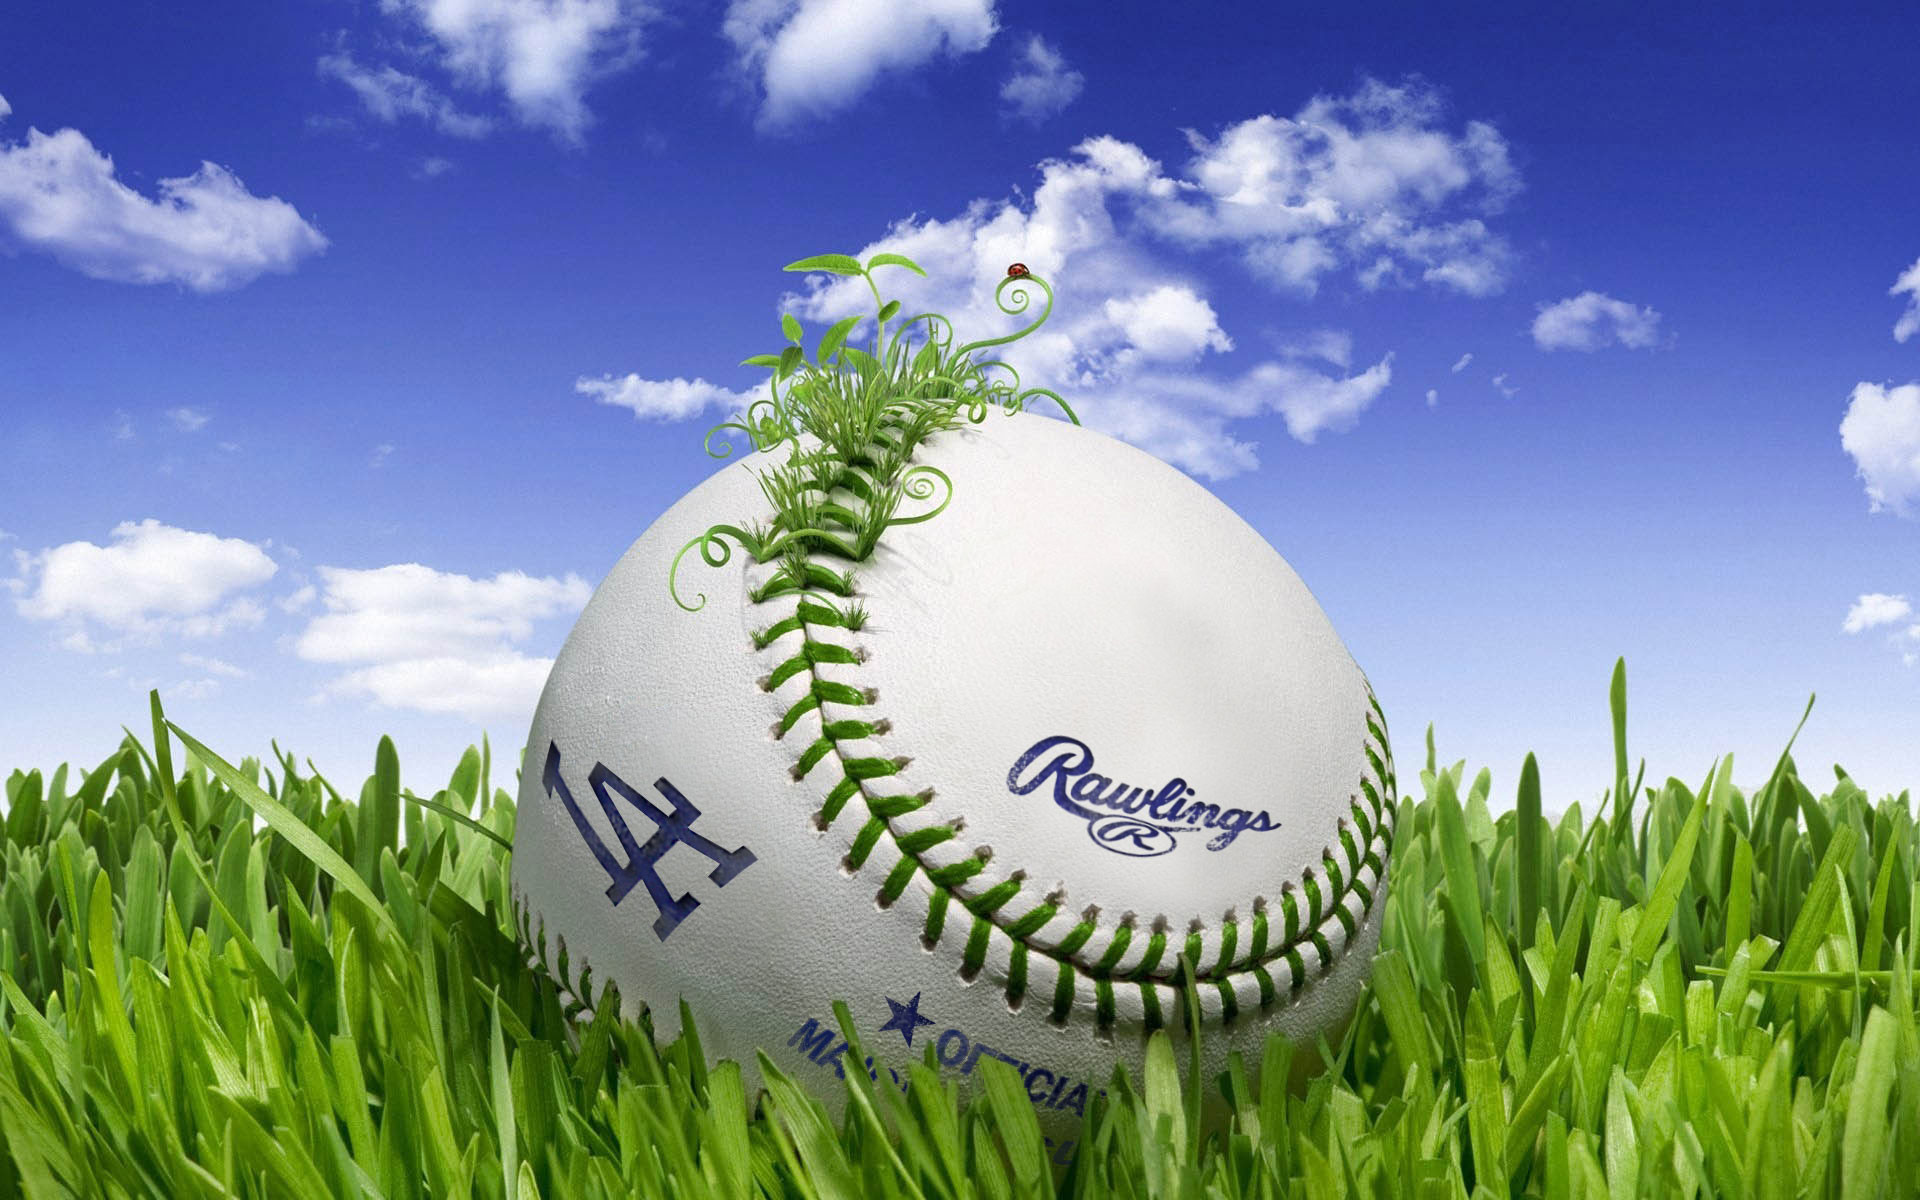 Free Los Angeles Dodgers Wallpapers Beautiful | HD Wallpapers | Pinterest |  Dodgers, Los angeles and Angeles